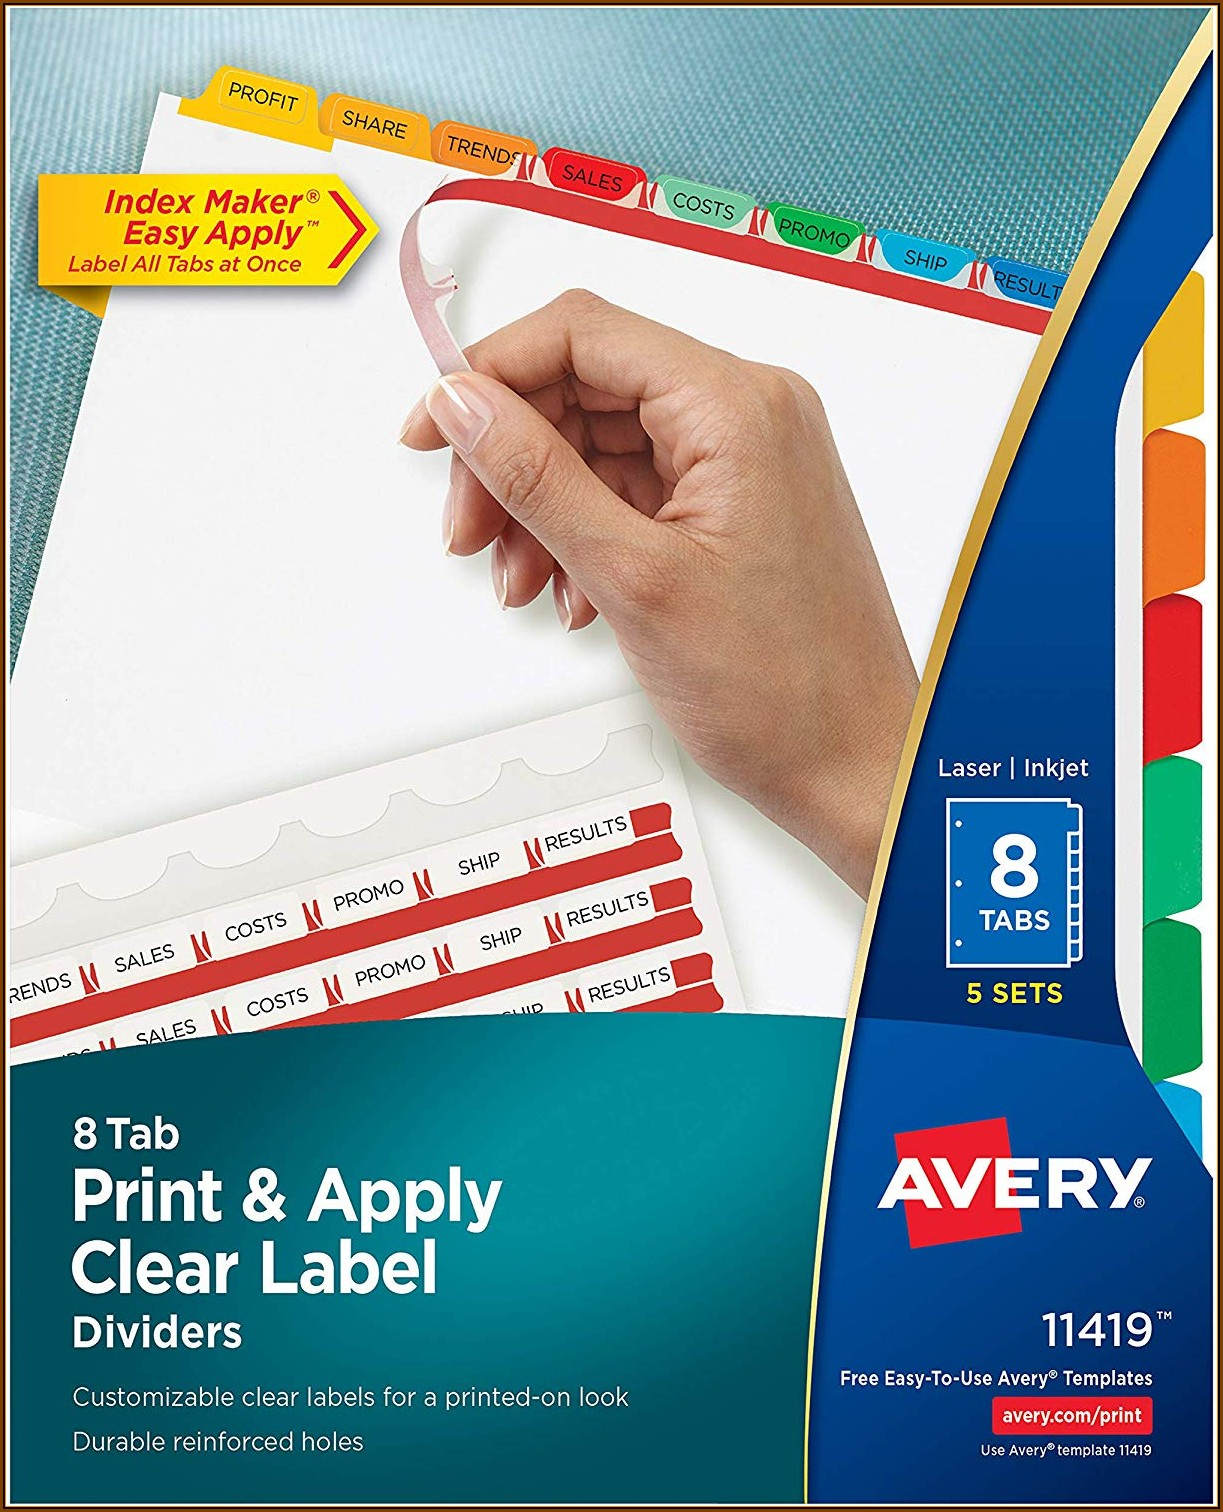 Avery Clear Label 8 Tab Divider Templates